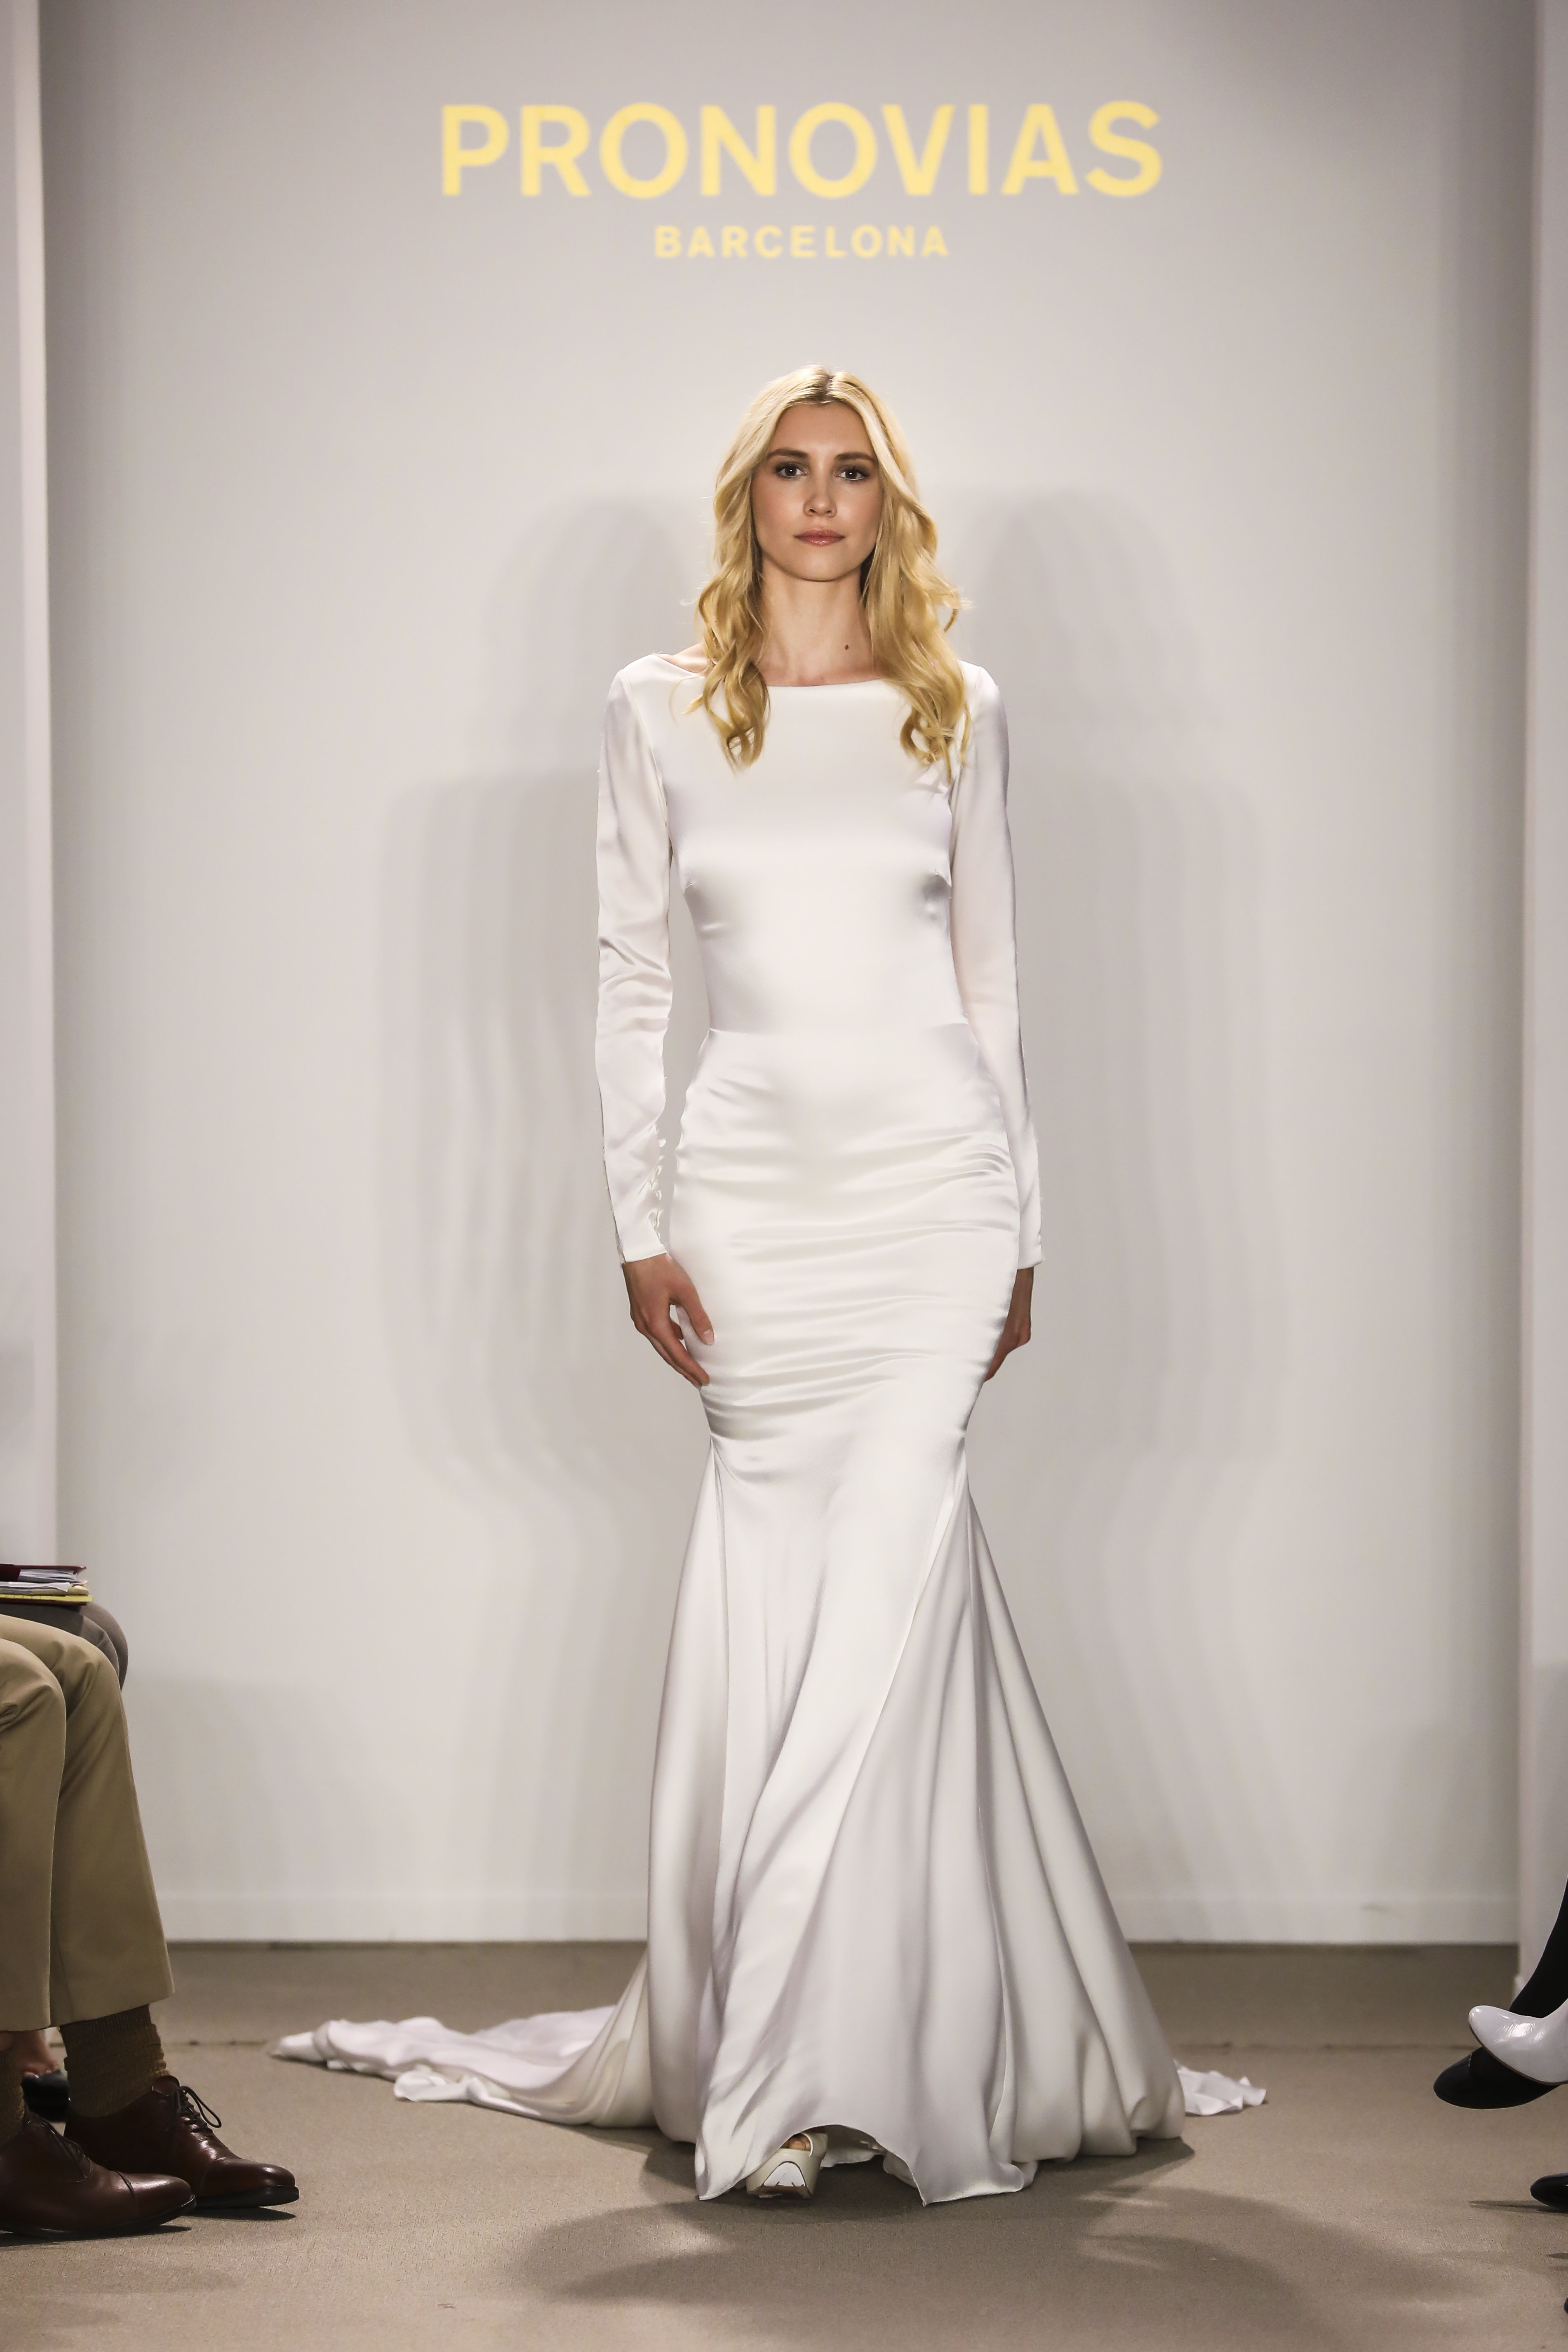 rachel from the atelier pronovias 2018 preview collection